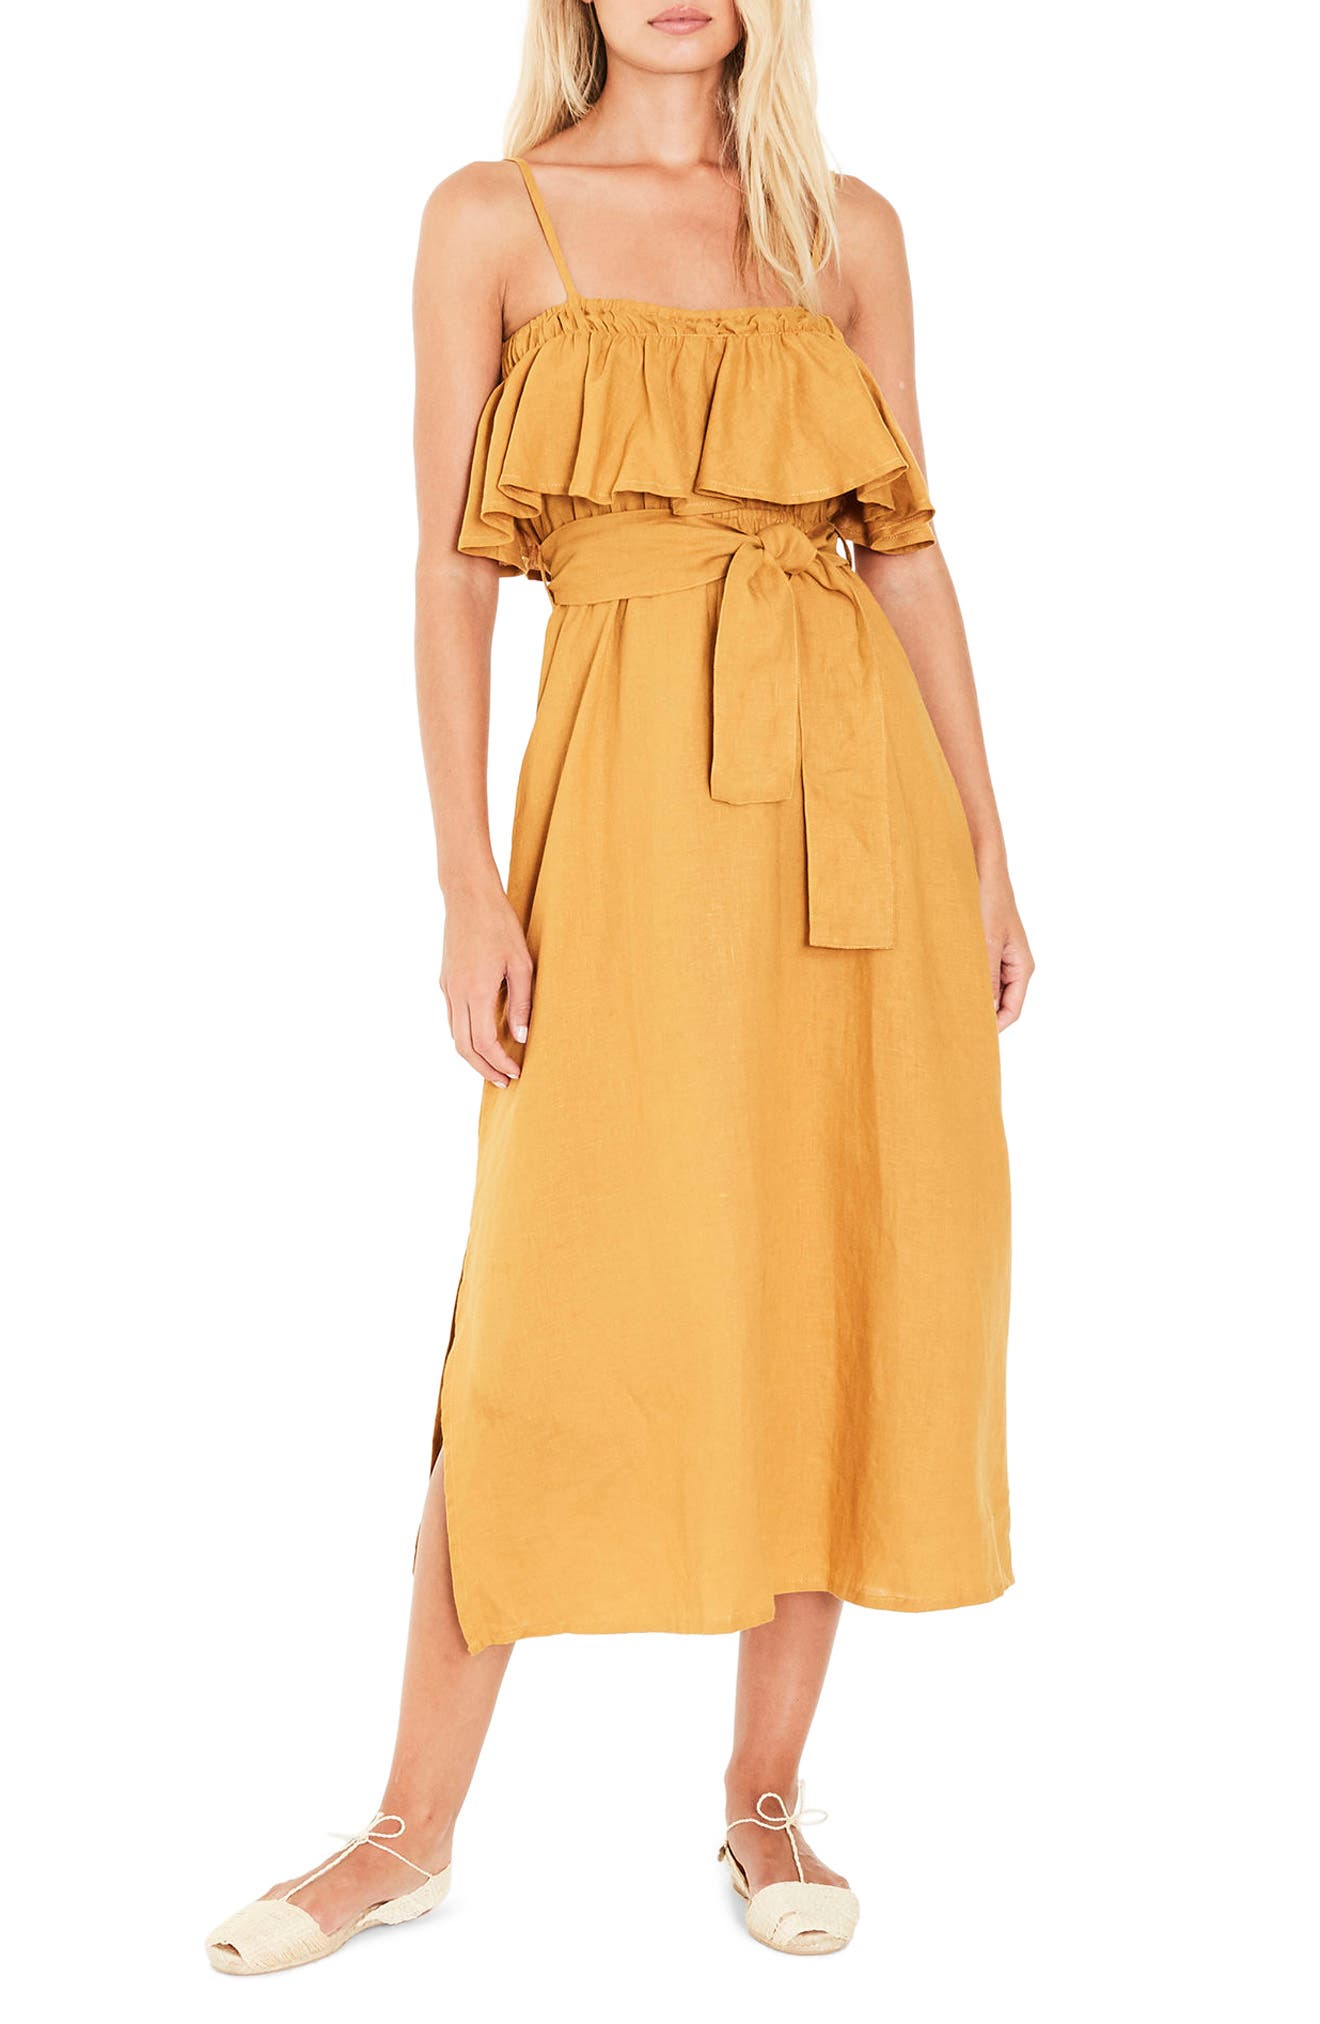 Santo Linen Midi Dress,                         Main,                         color, PLAIN MARIGOLD